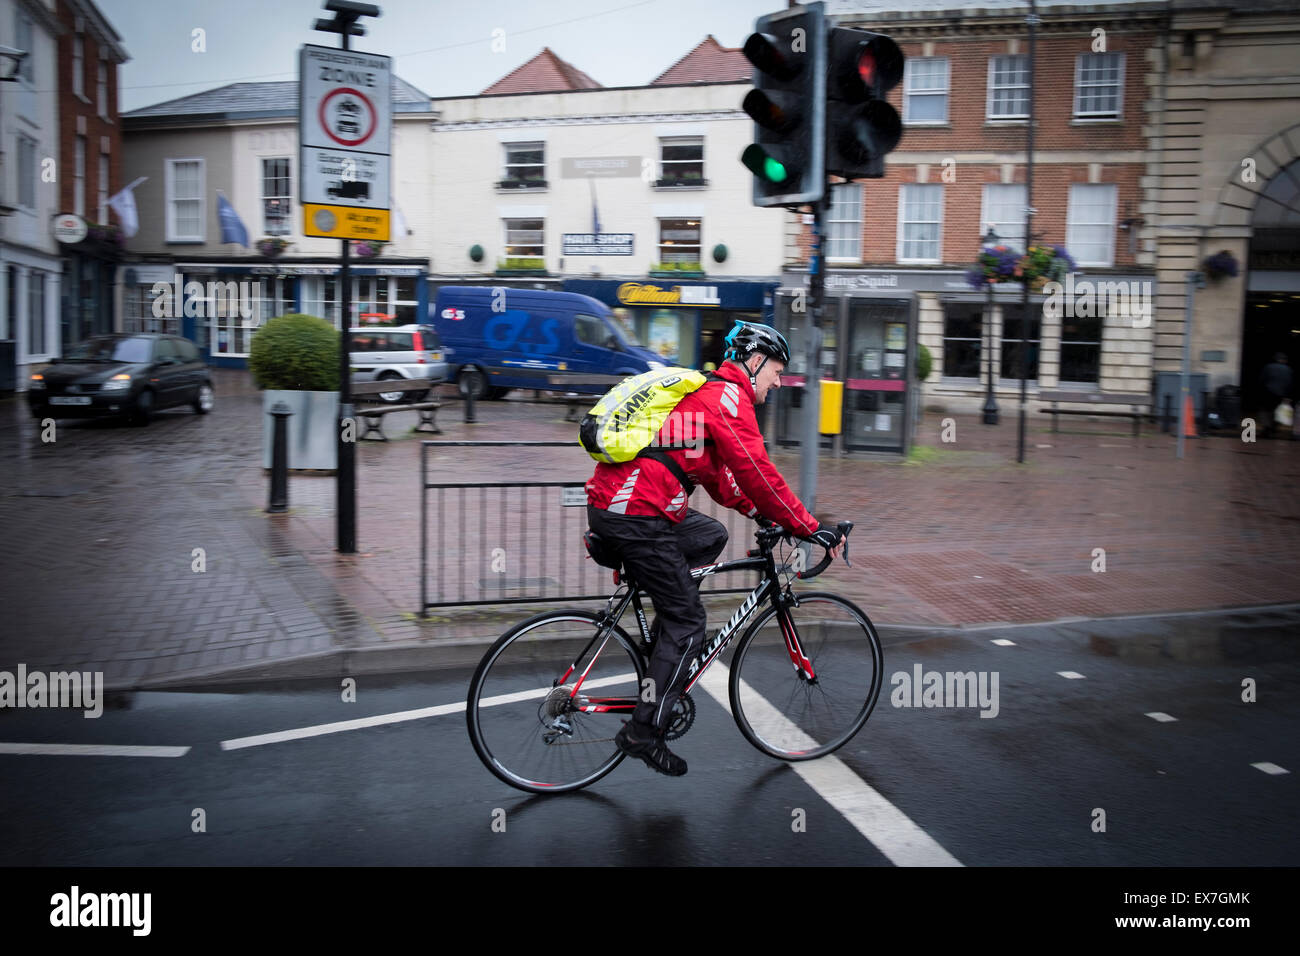 cycling-in-city-of-salisbury-on-a-wet-day-EX7GMK.jpg